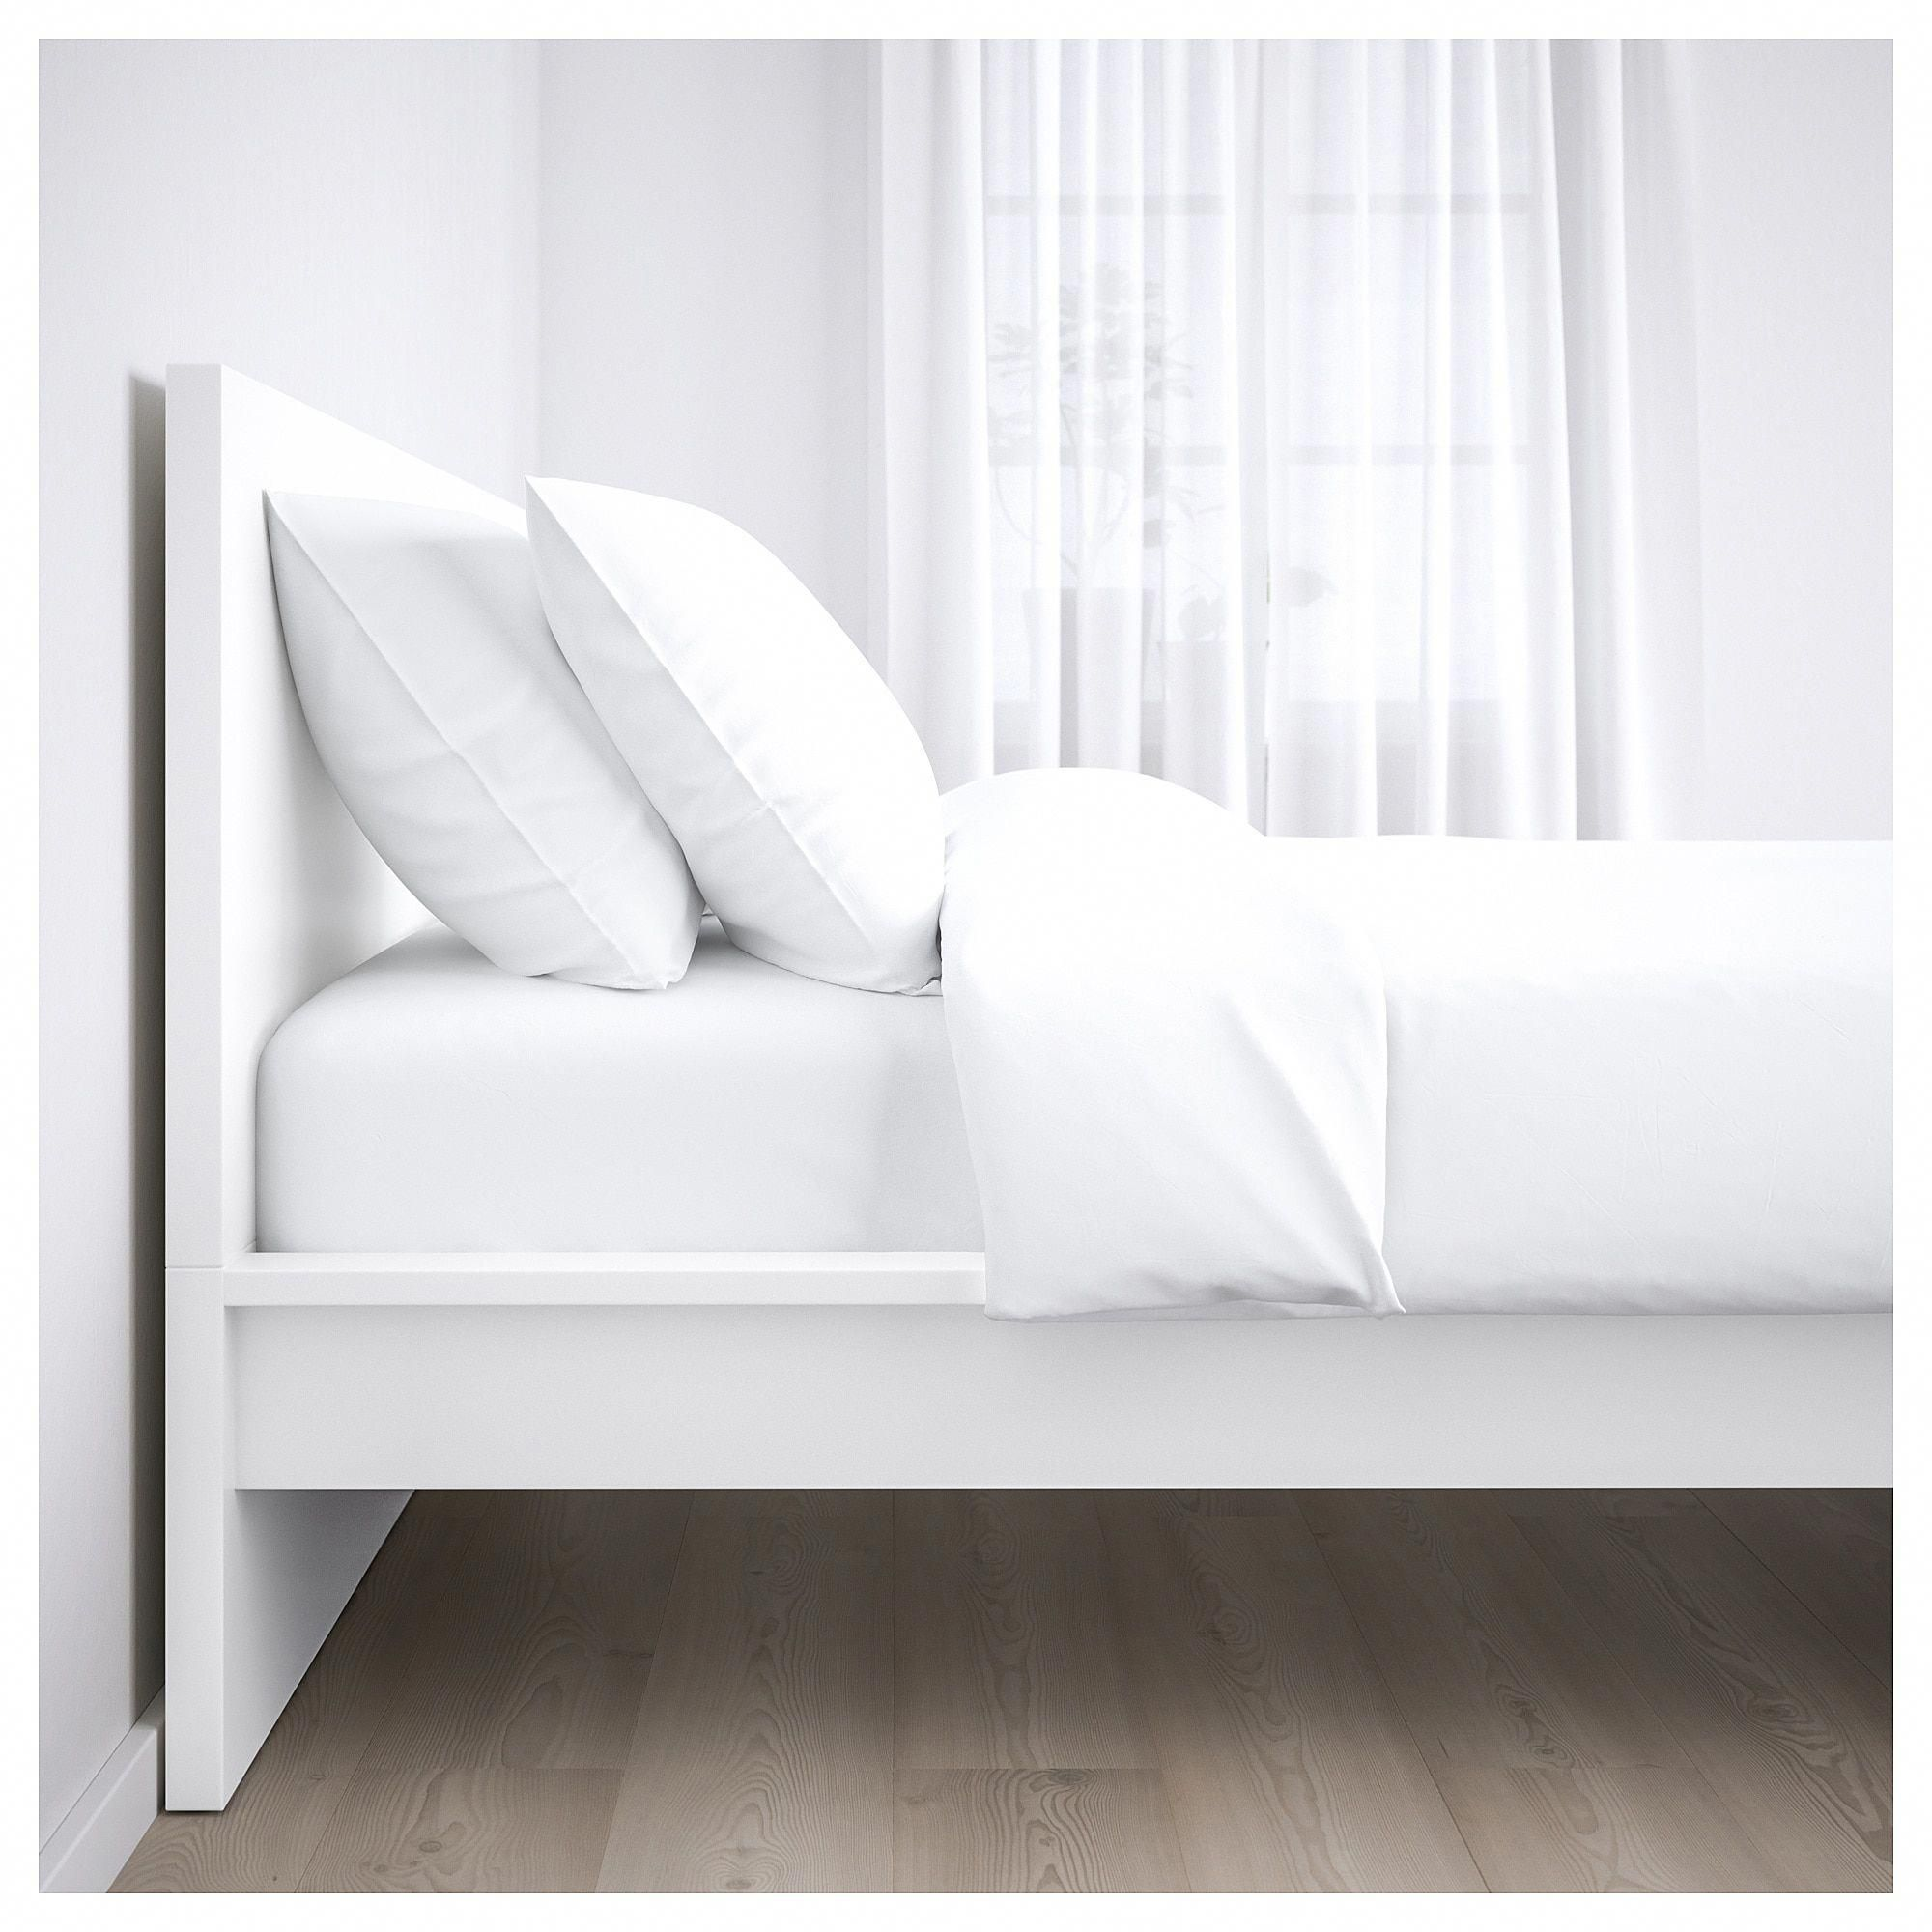 Ikea Malm White Lonset Bed Frame High Beds In 2020 Bed Ikea